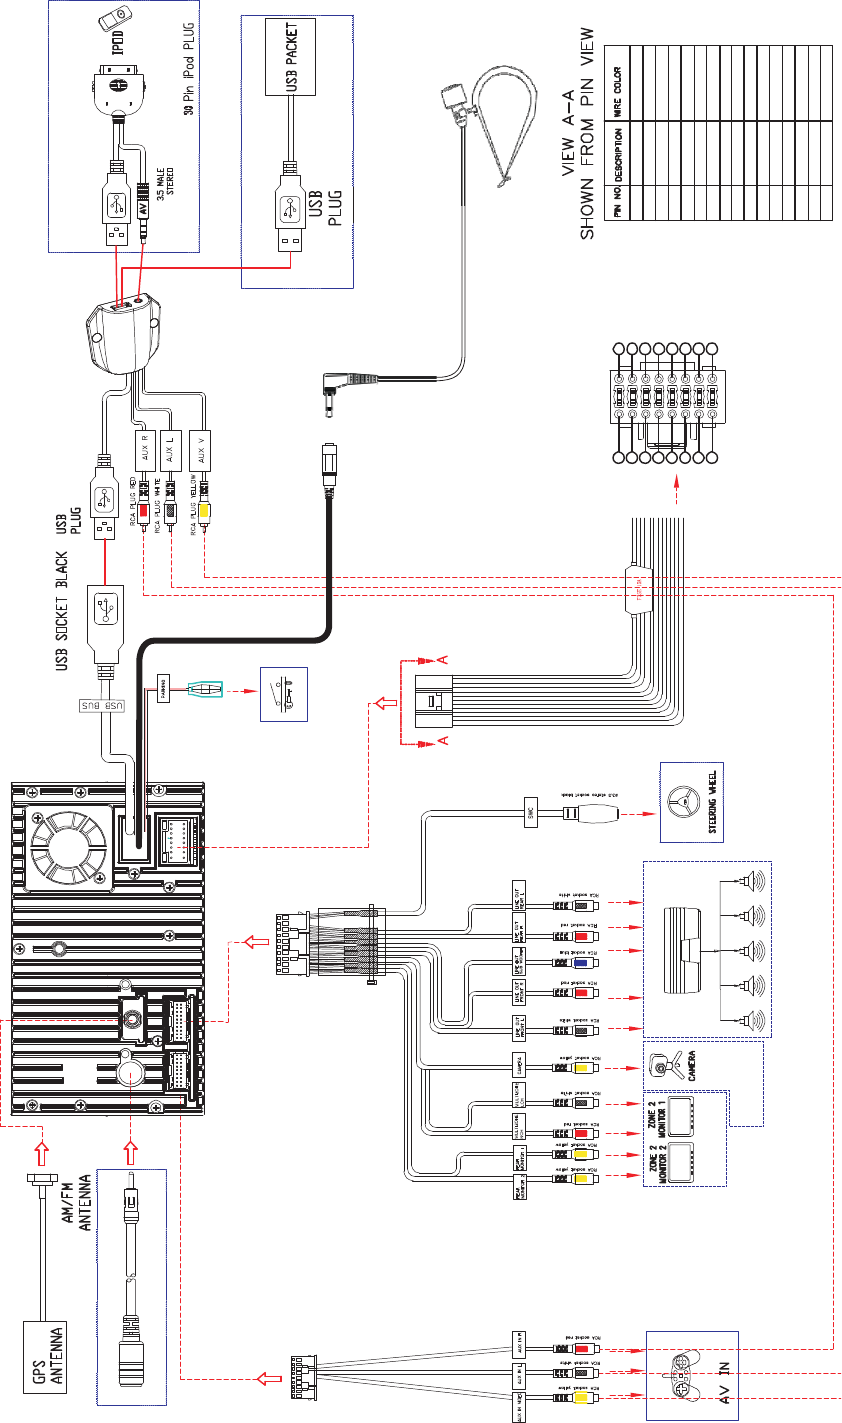 Jensen Radio Wiring - Aprilaire Current Sensing Relay Wiring Diagram for Wiring  Diagram SchematicsWiring Diagram Schematics